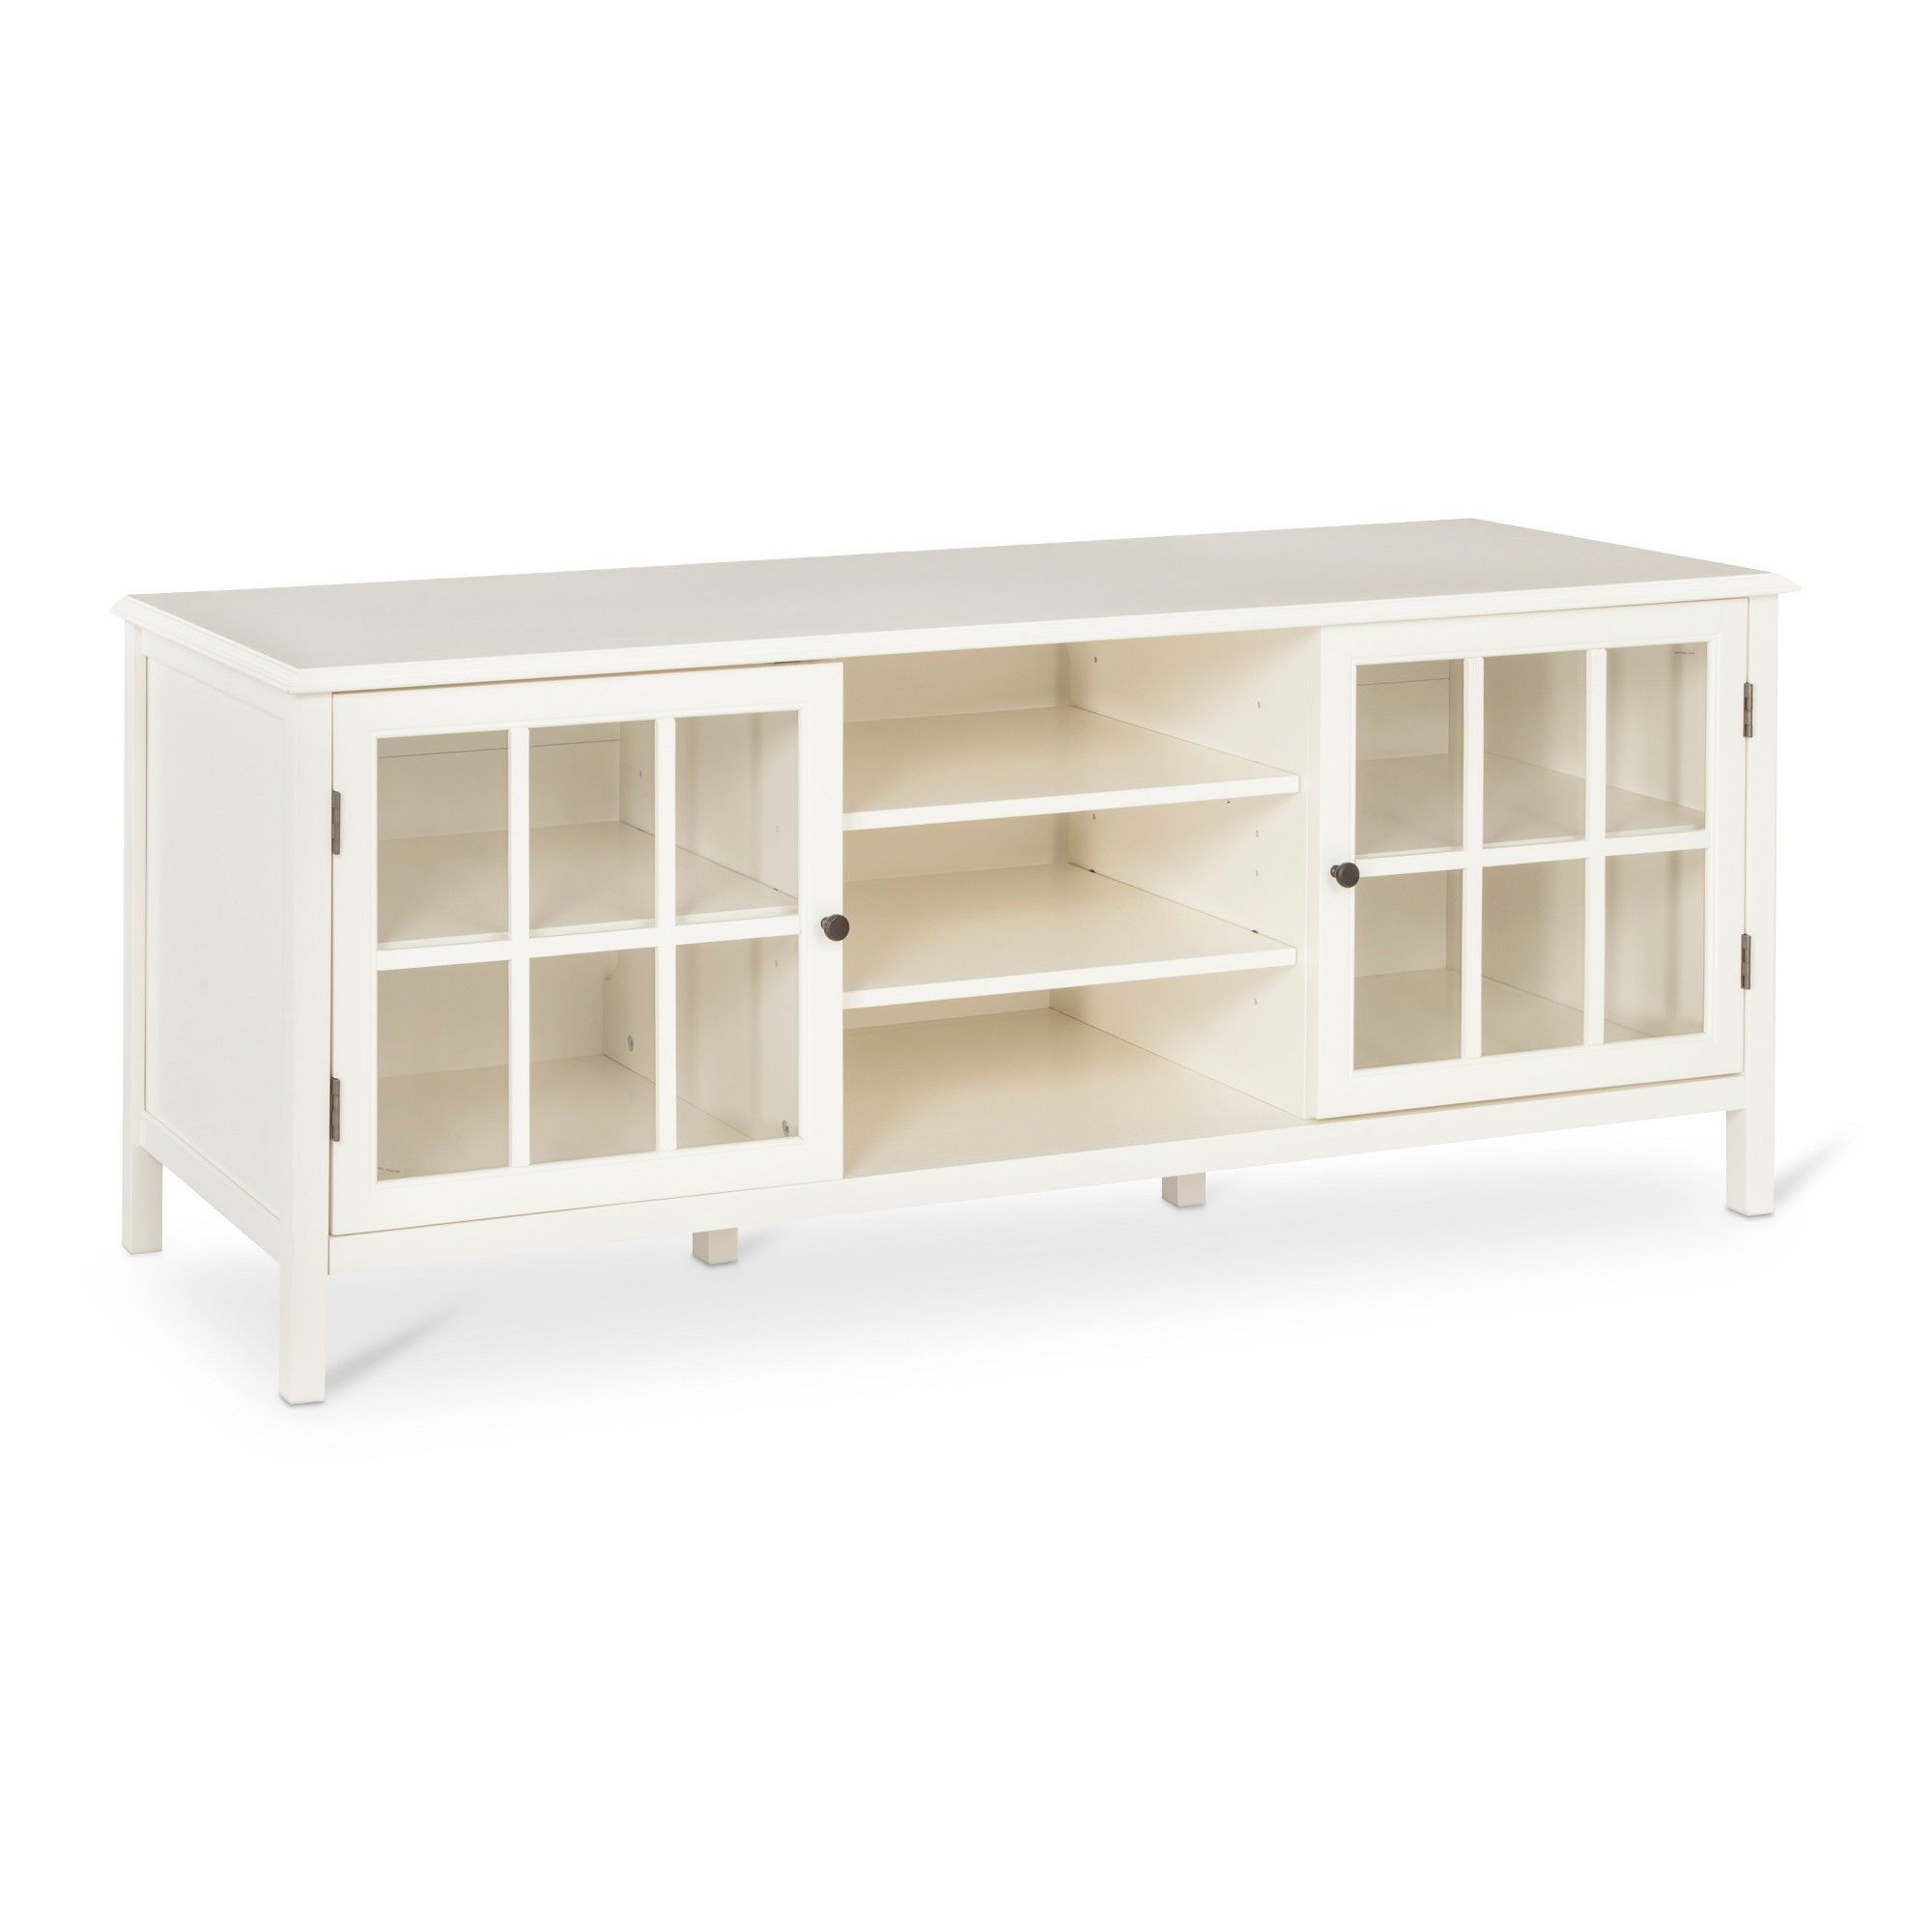 graceful white desk or diy condo windham furniture instructions with minimalist for exquisite terrific threshold of articles winsome under project desks the assembly